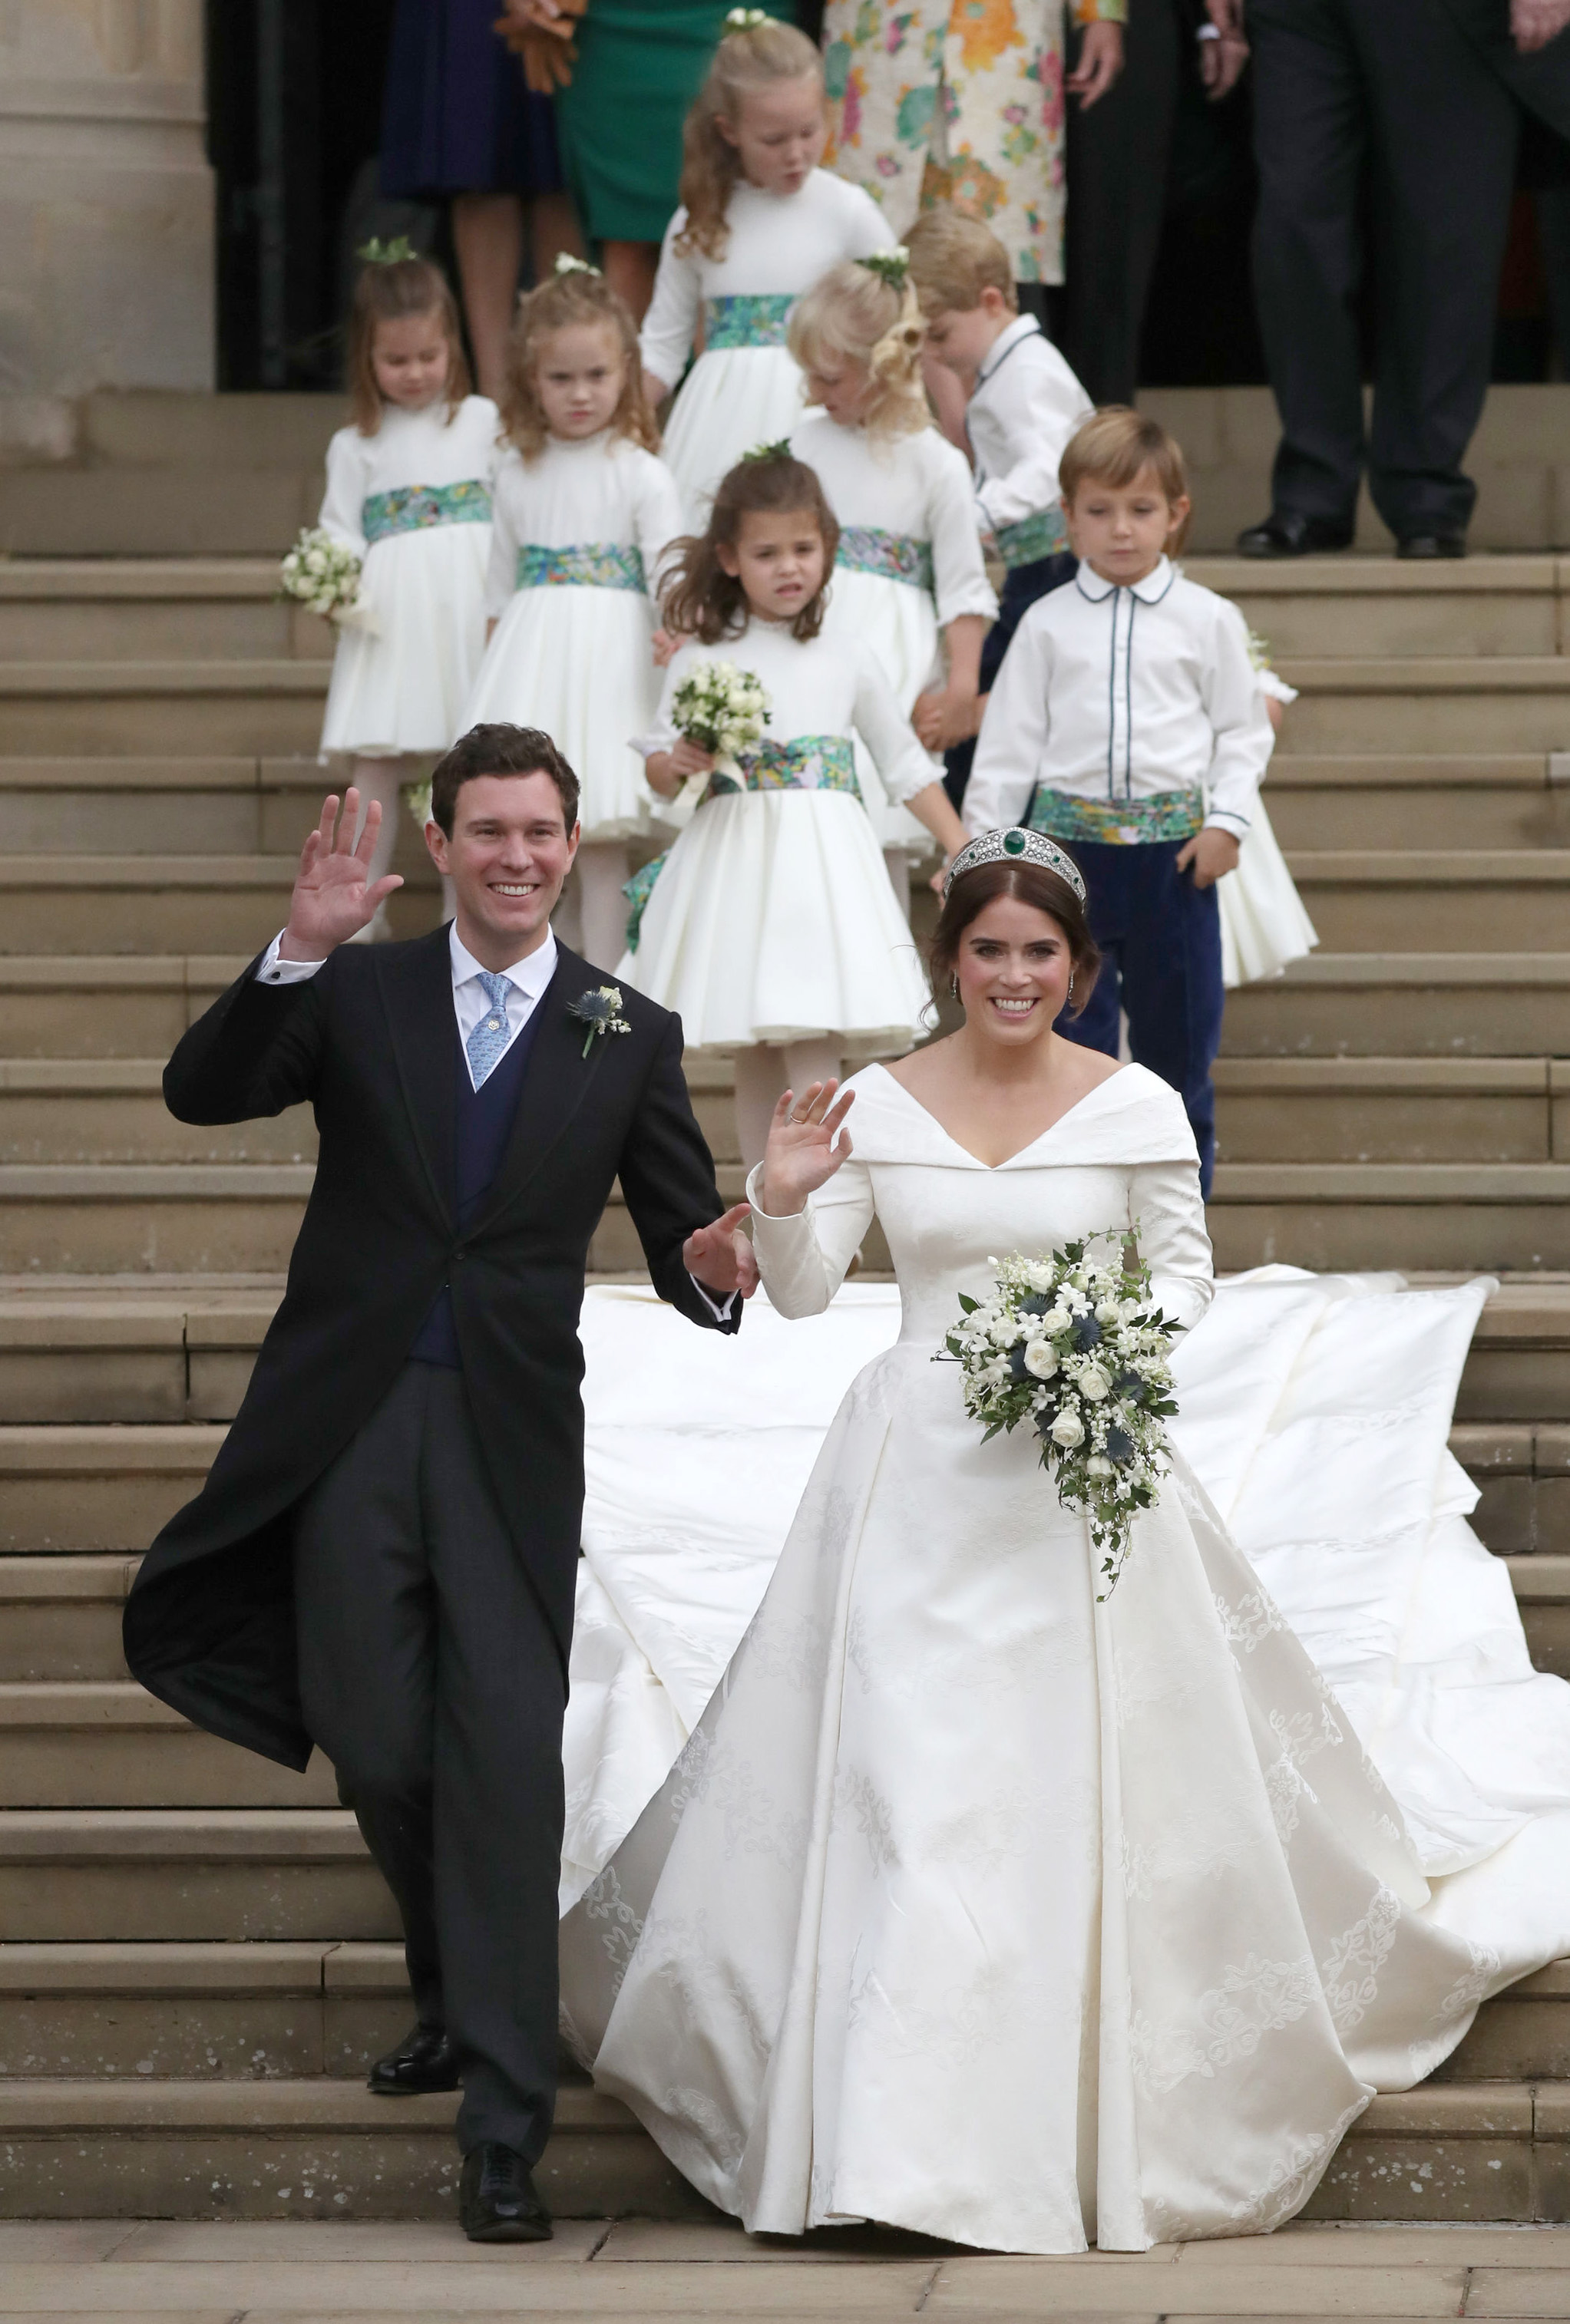 Jack Brooksbank and Princess Eugenie of York walk down the steps followed by their page boys and bridesmaids after their wedding ceremony at St. George's Chapel on October 12, 2018, in Windsor, England. (Getty Images)